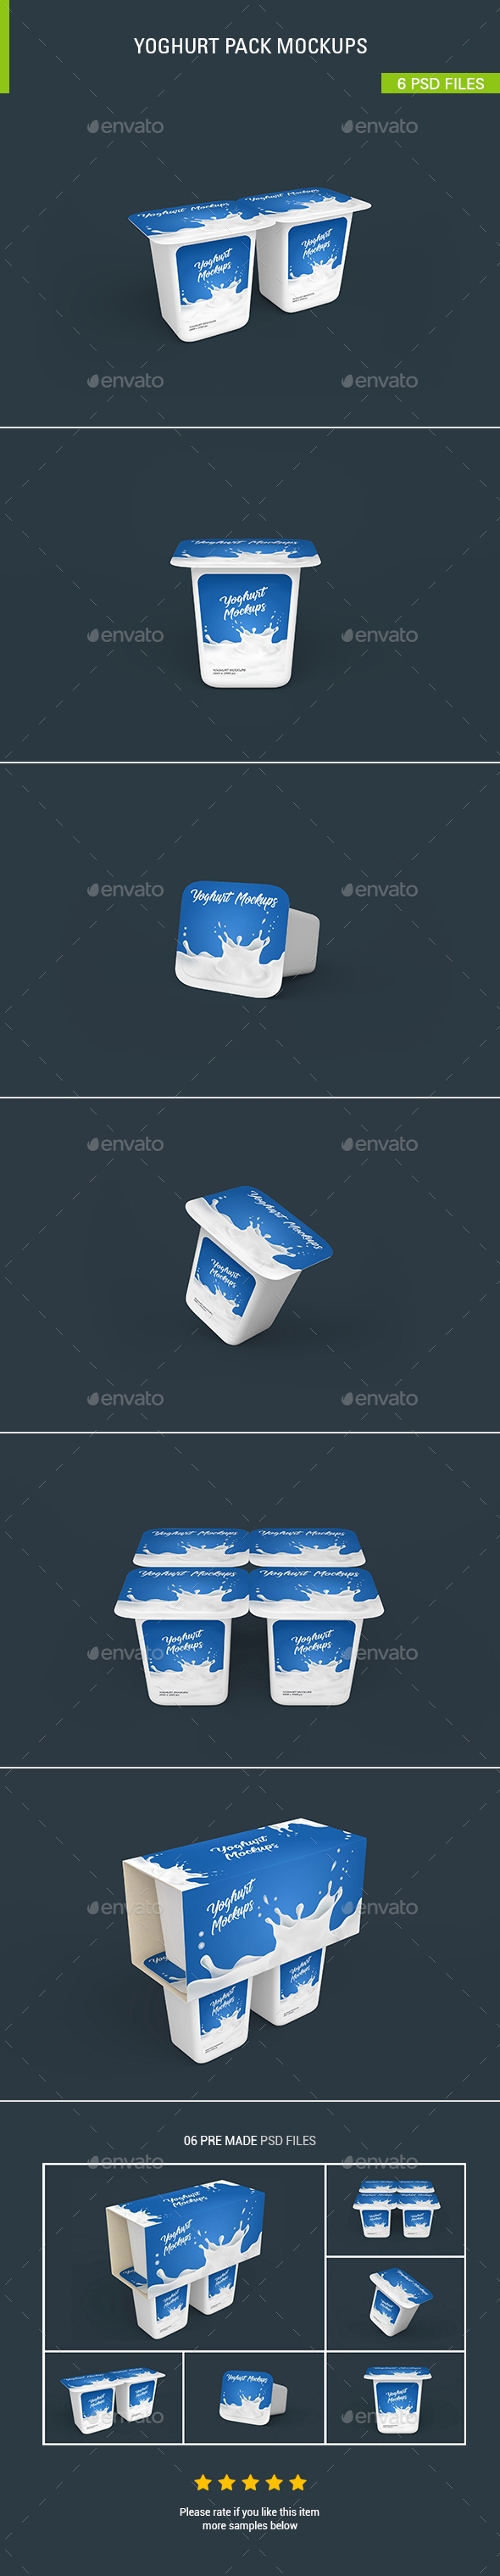 Yoghurt Mockups - Food and Drink Packaging